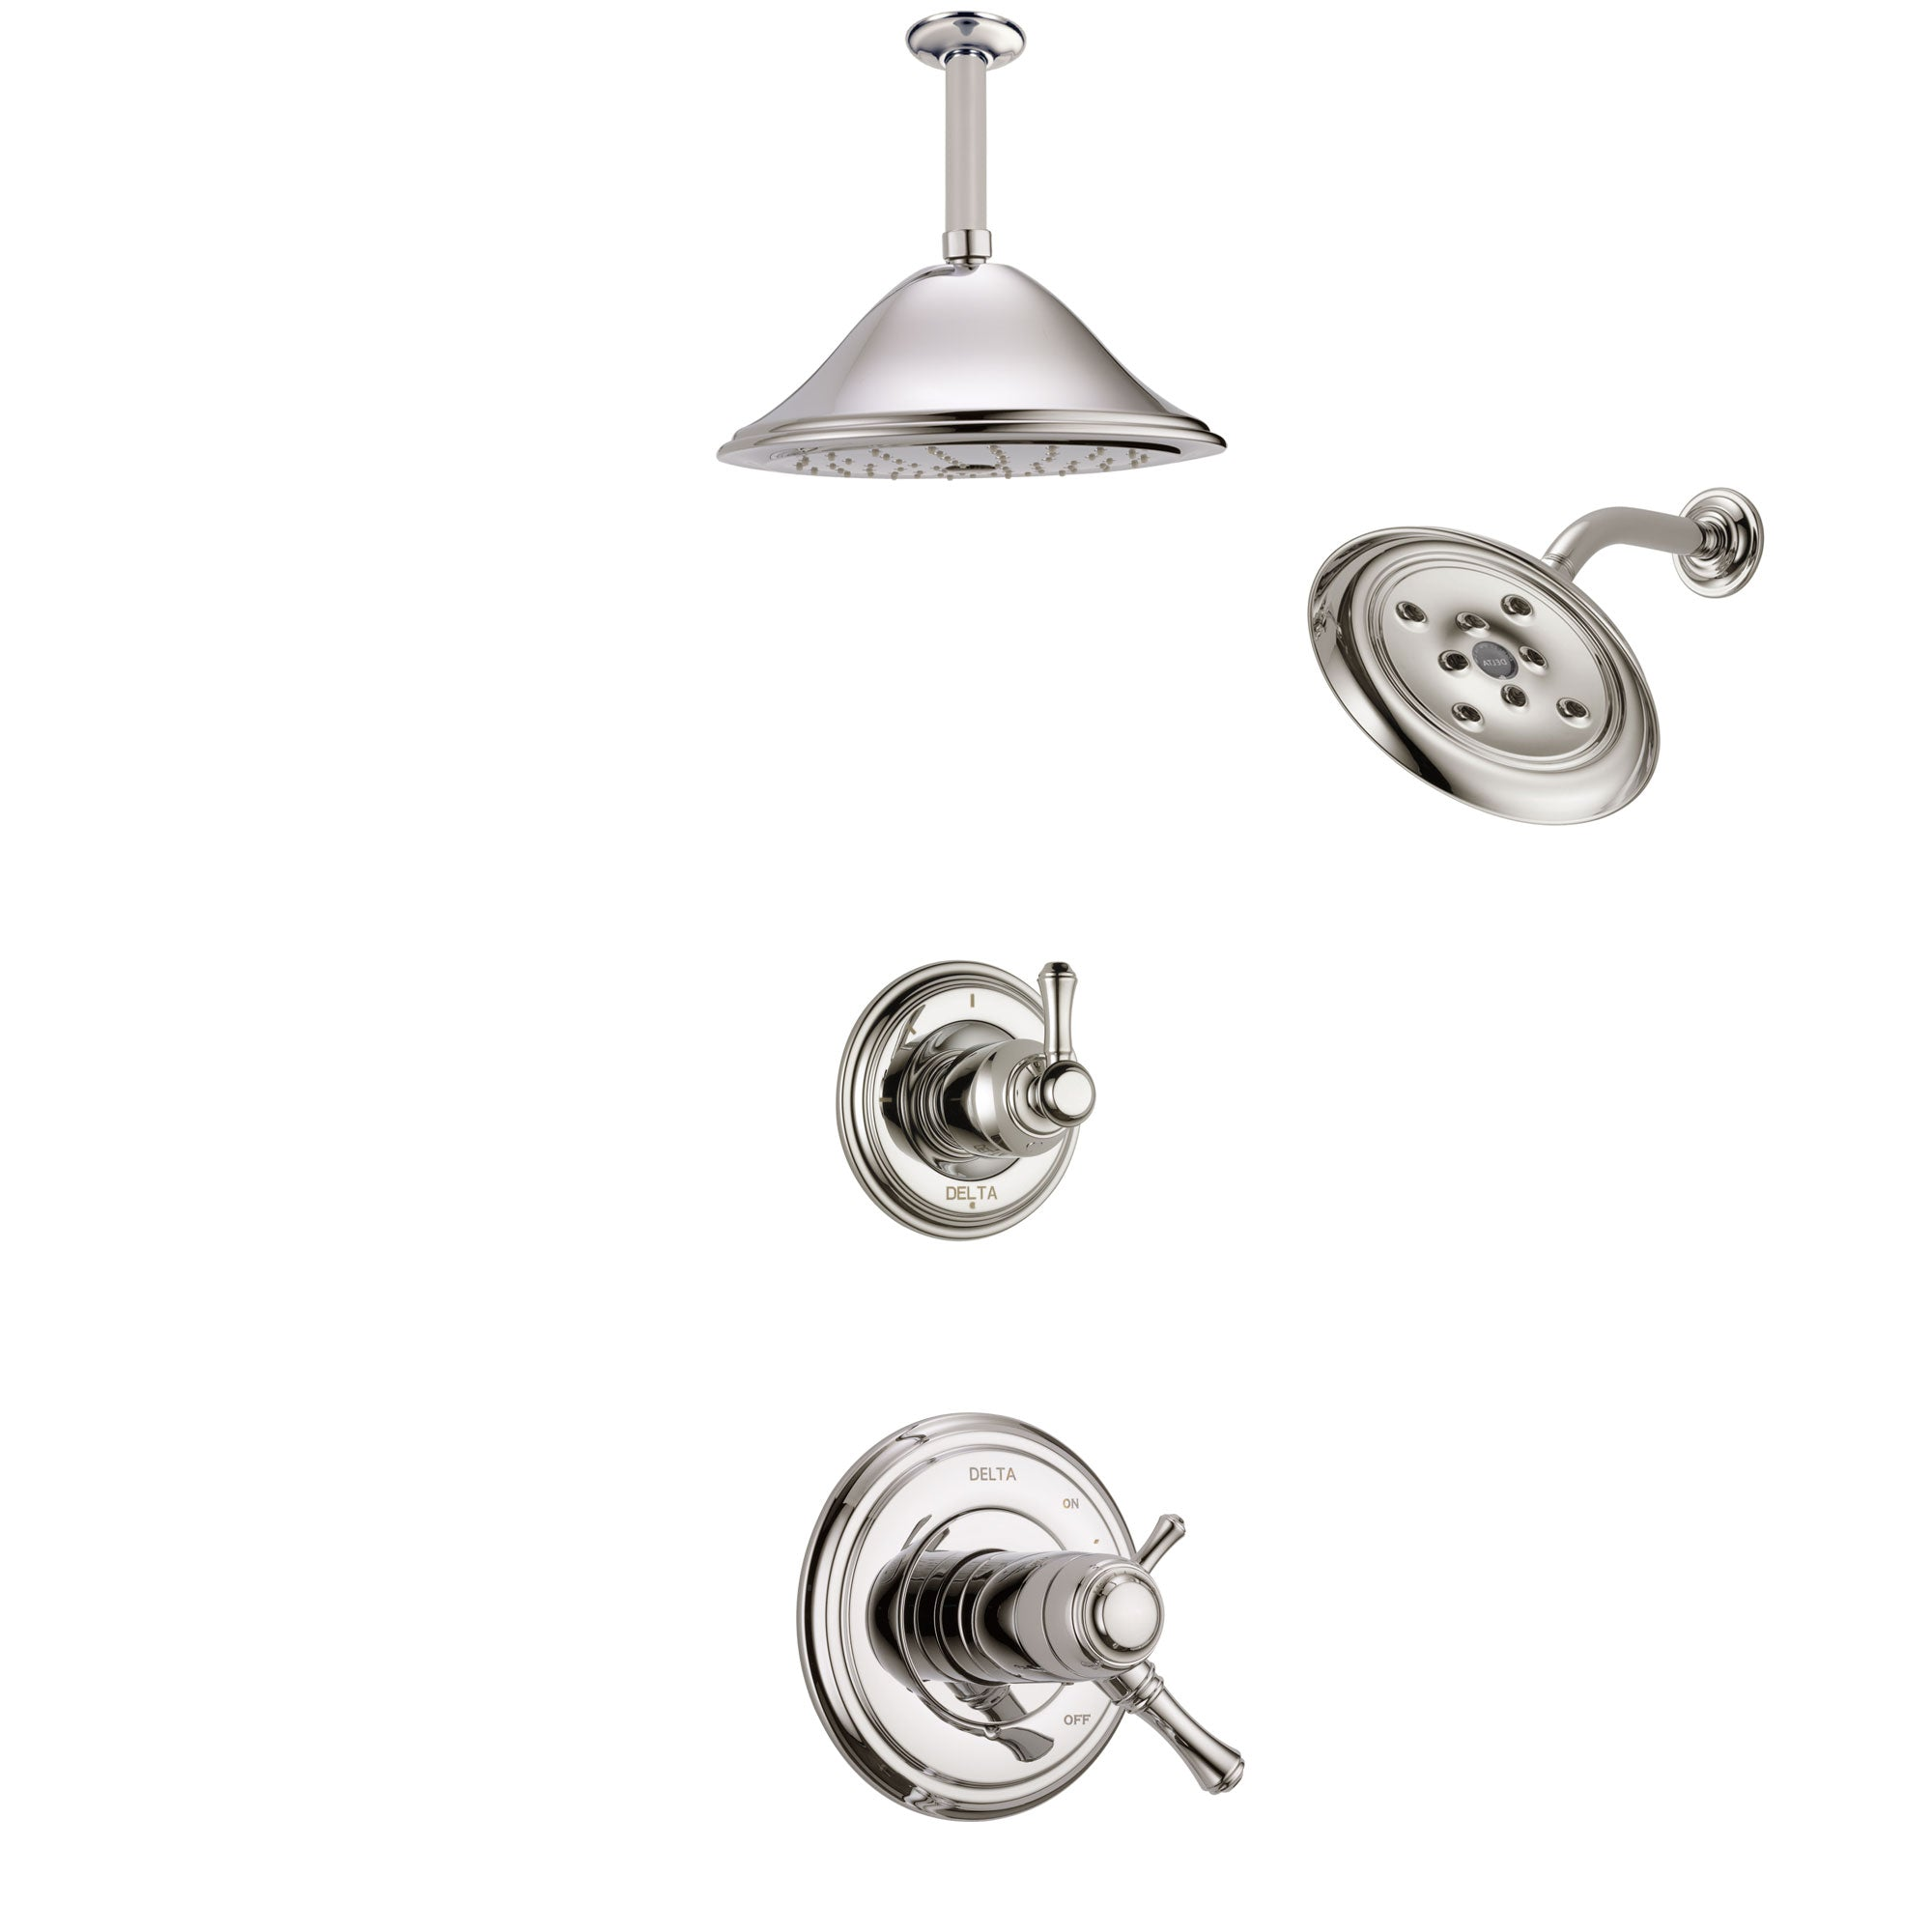 Delta Cassidy Polished Nickel Shower System with Dual Thermostatic Control Handle, Diverter, Showerhead, and Ceiling Mount Showerhead SS17T972PN7